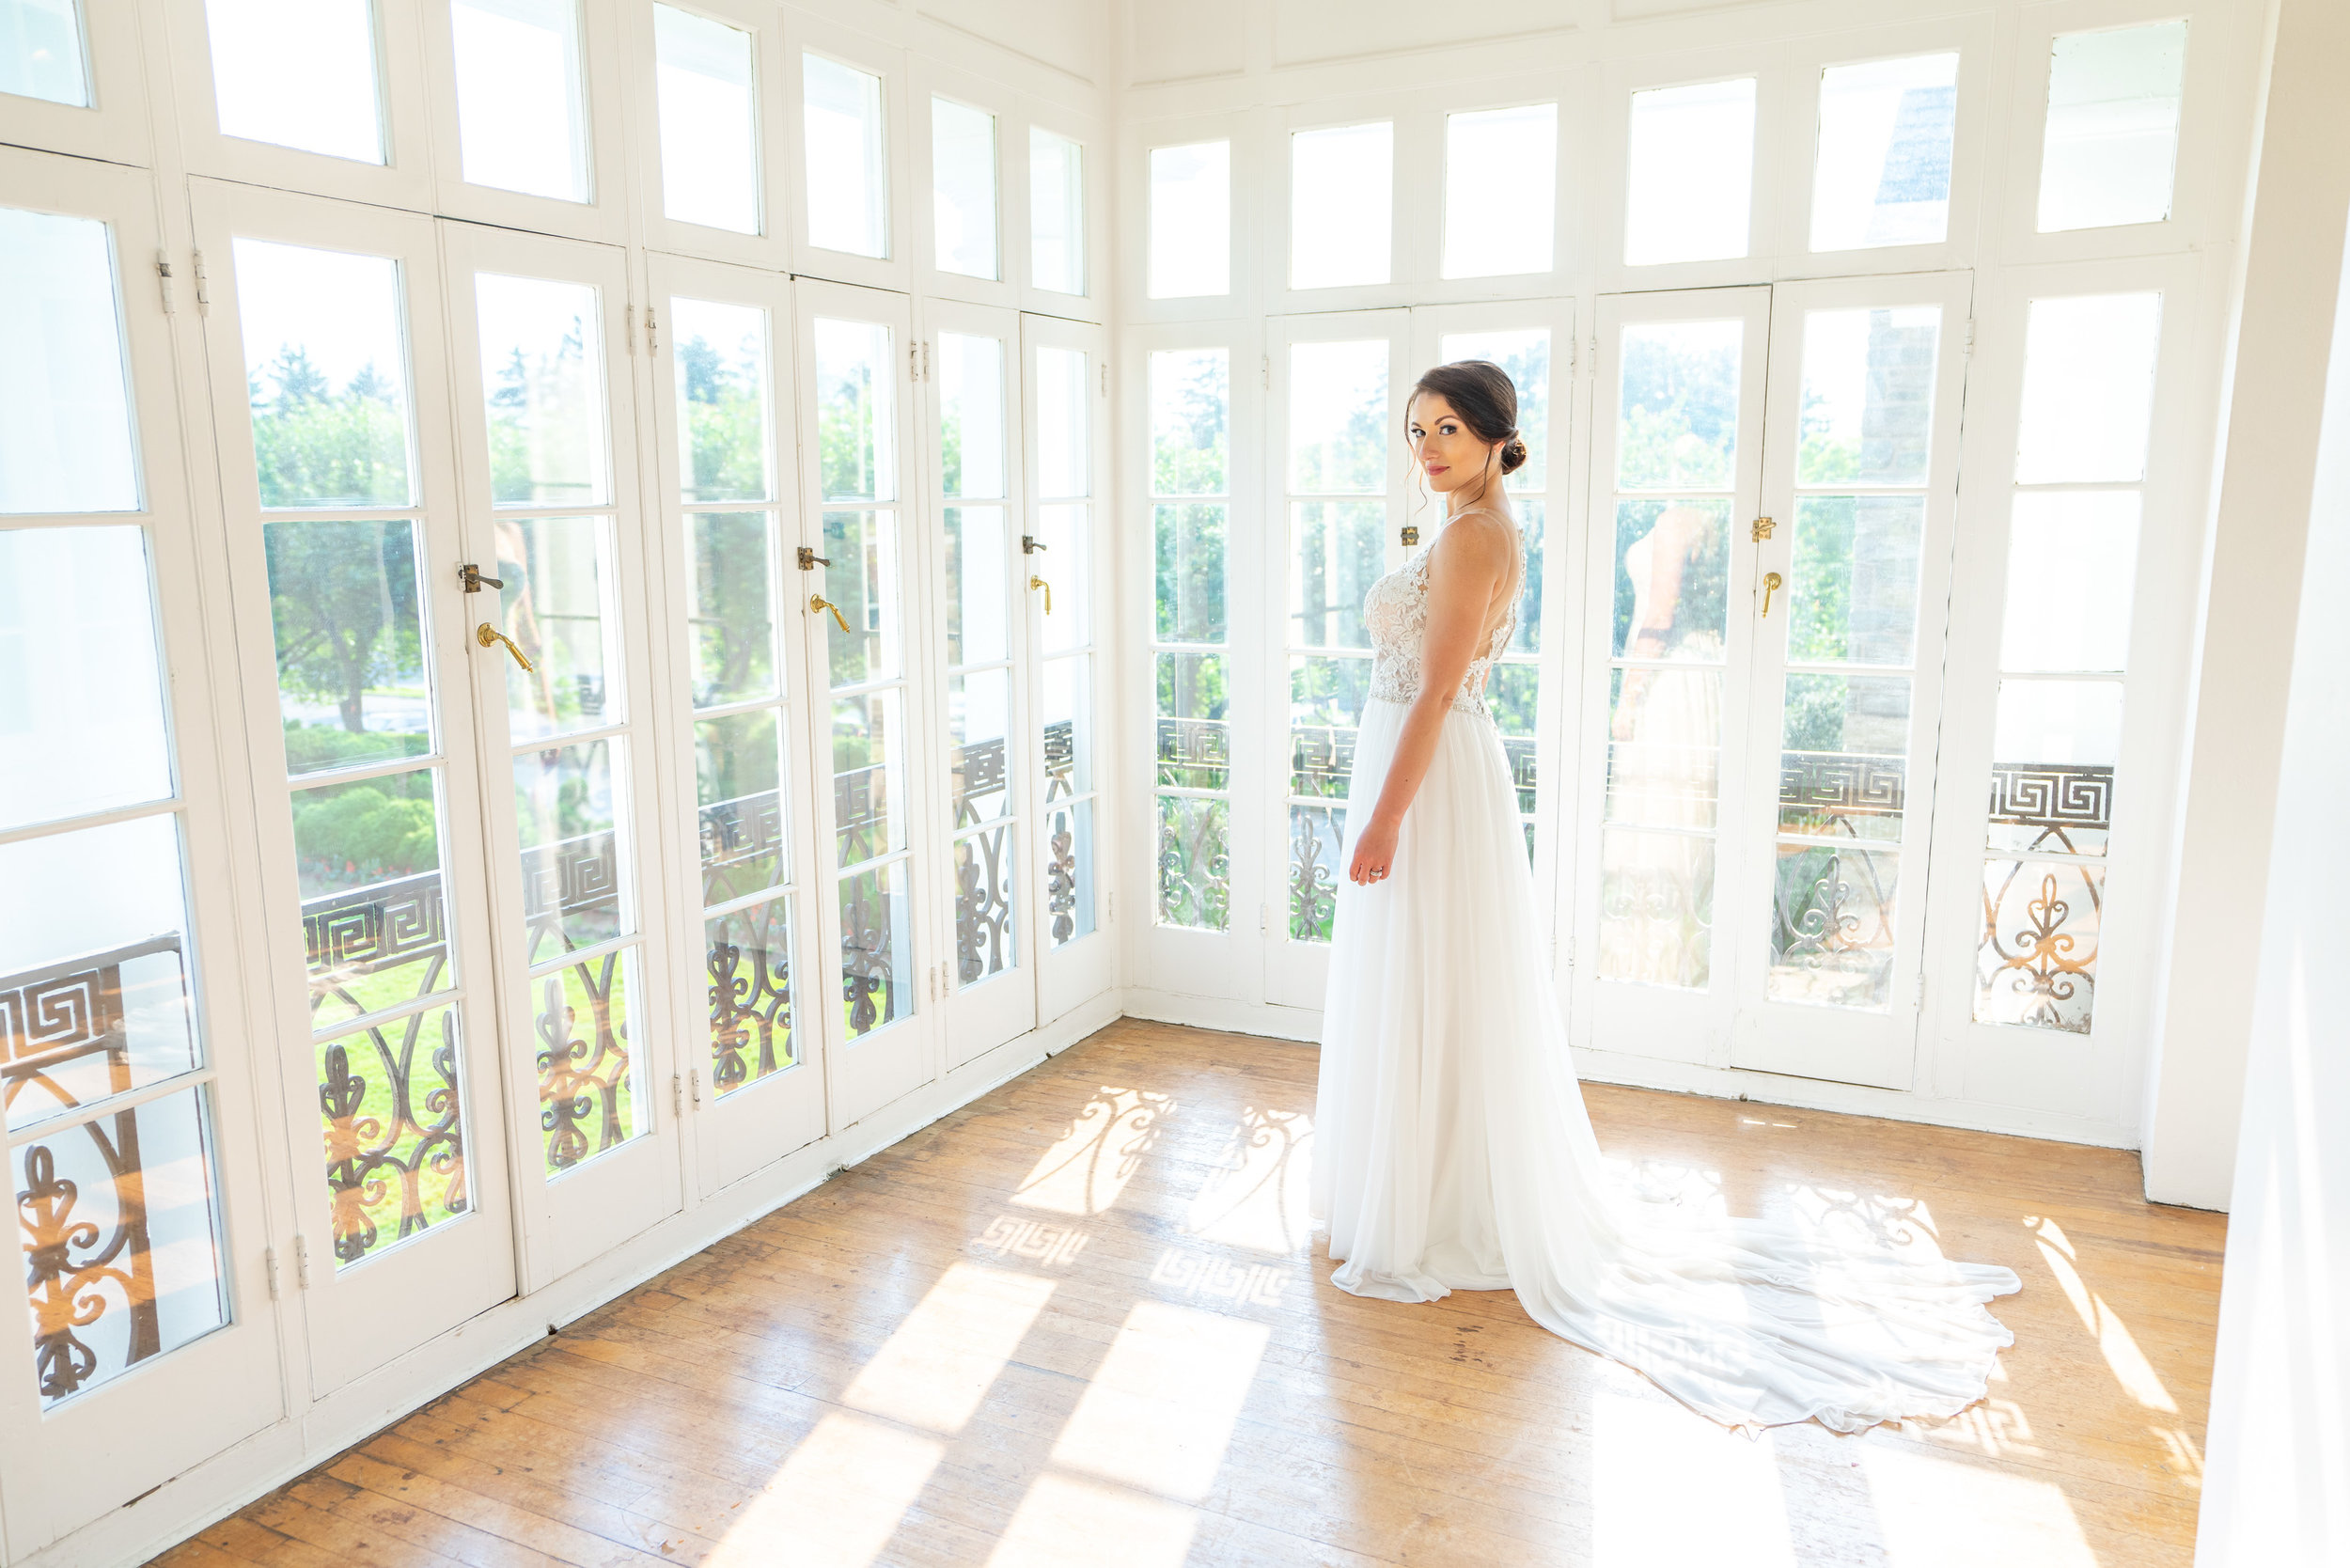 Bride standing in glass balcony overlooking Rockville's Glenview Mansion